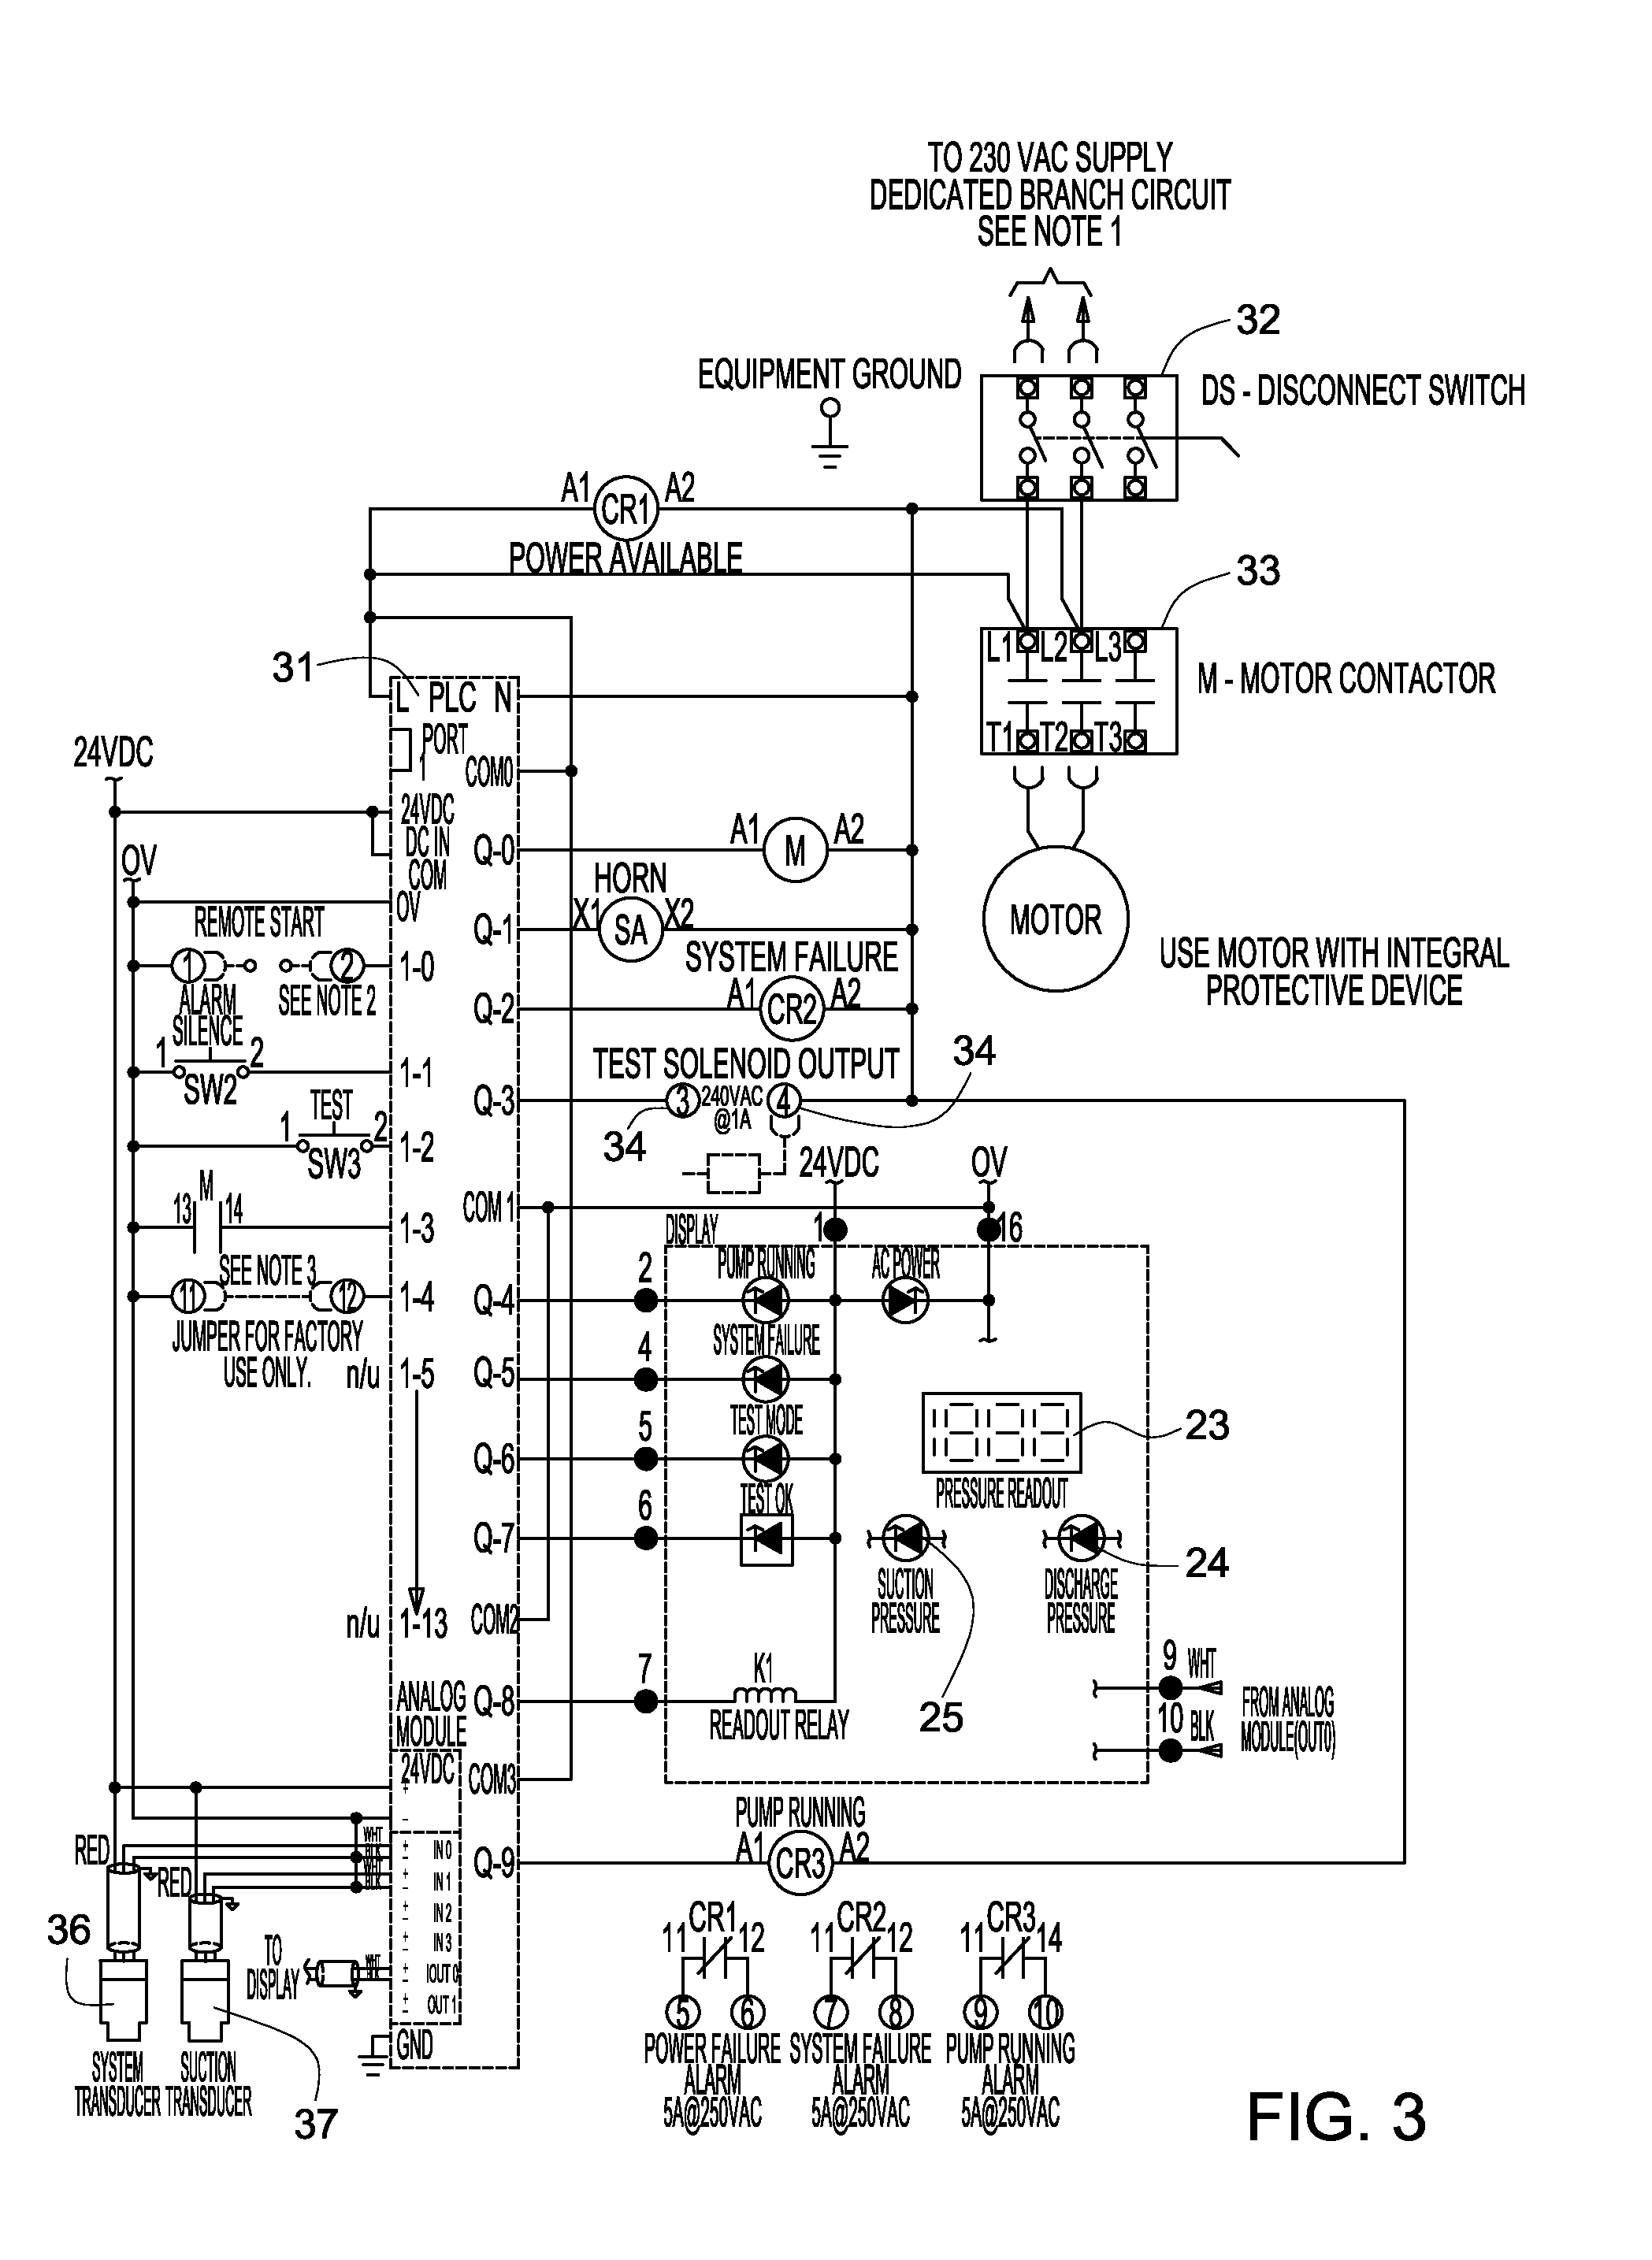 US20120298381A1 20121129 D00003 patent us20120298381 self testing and self calibrating fire sprinkler flow switch wiring diagram at readyjetset.co